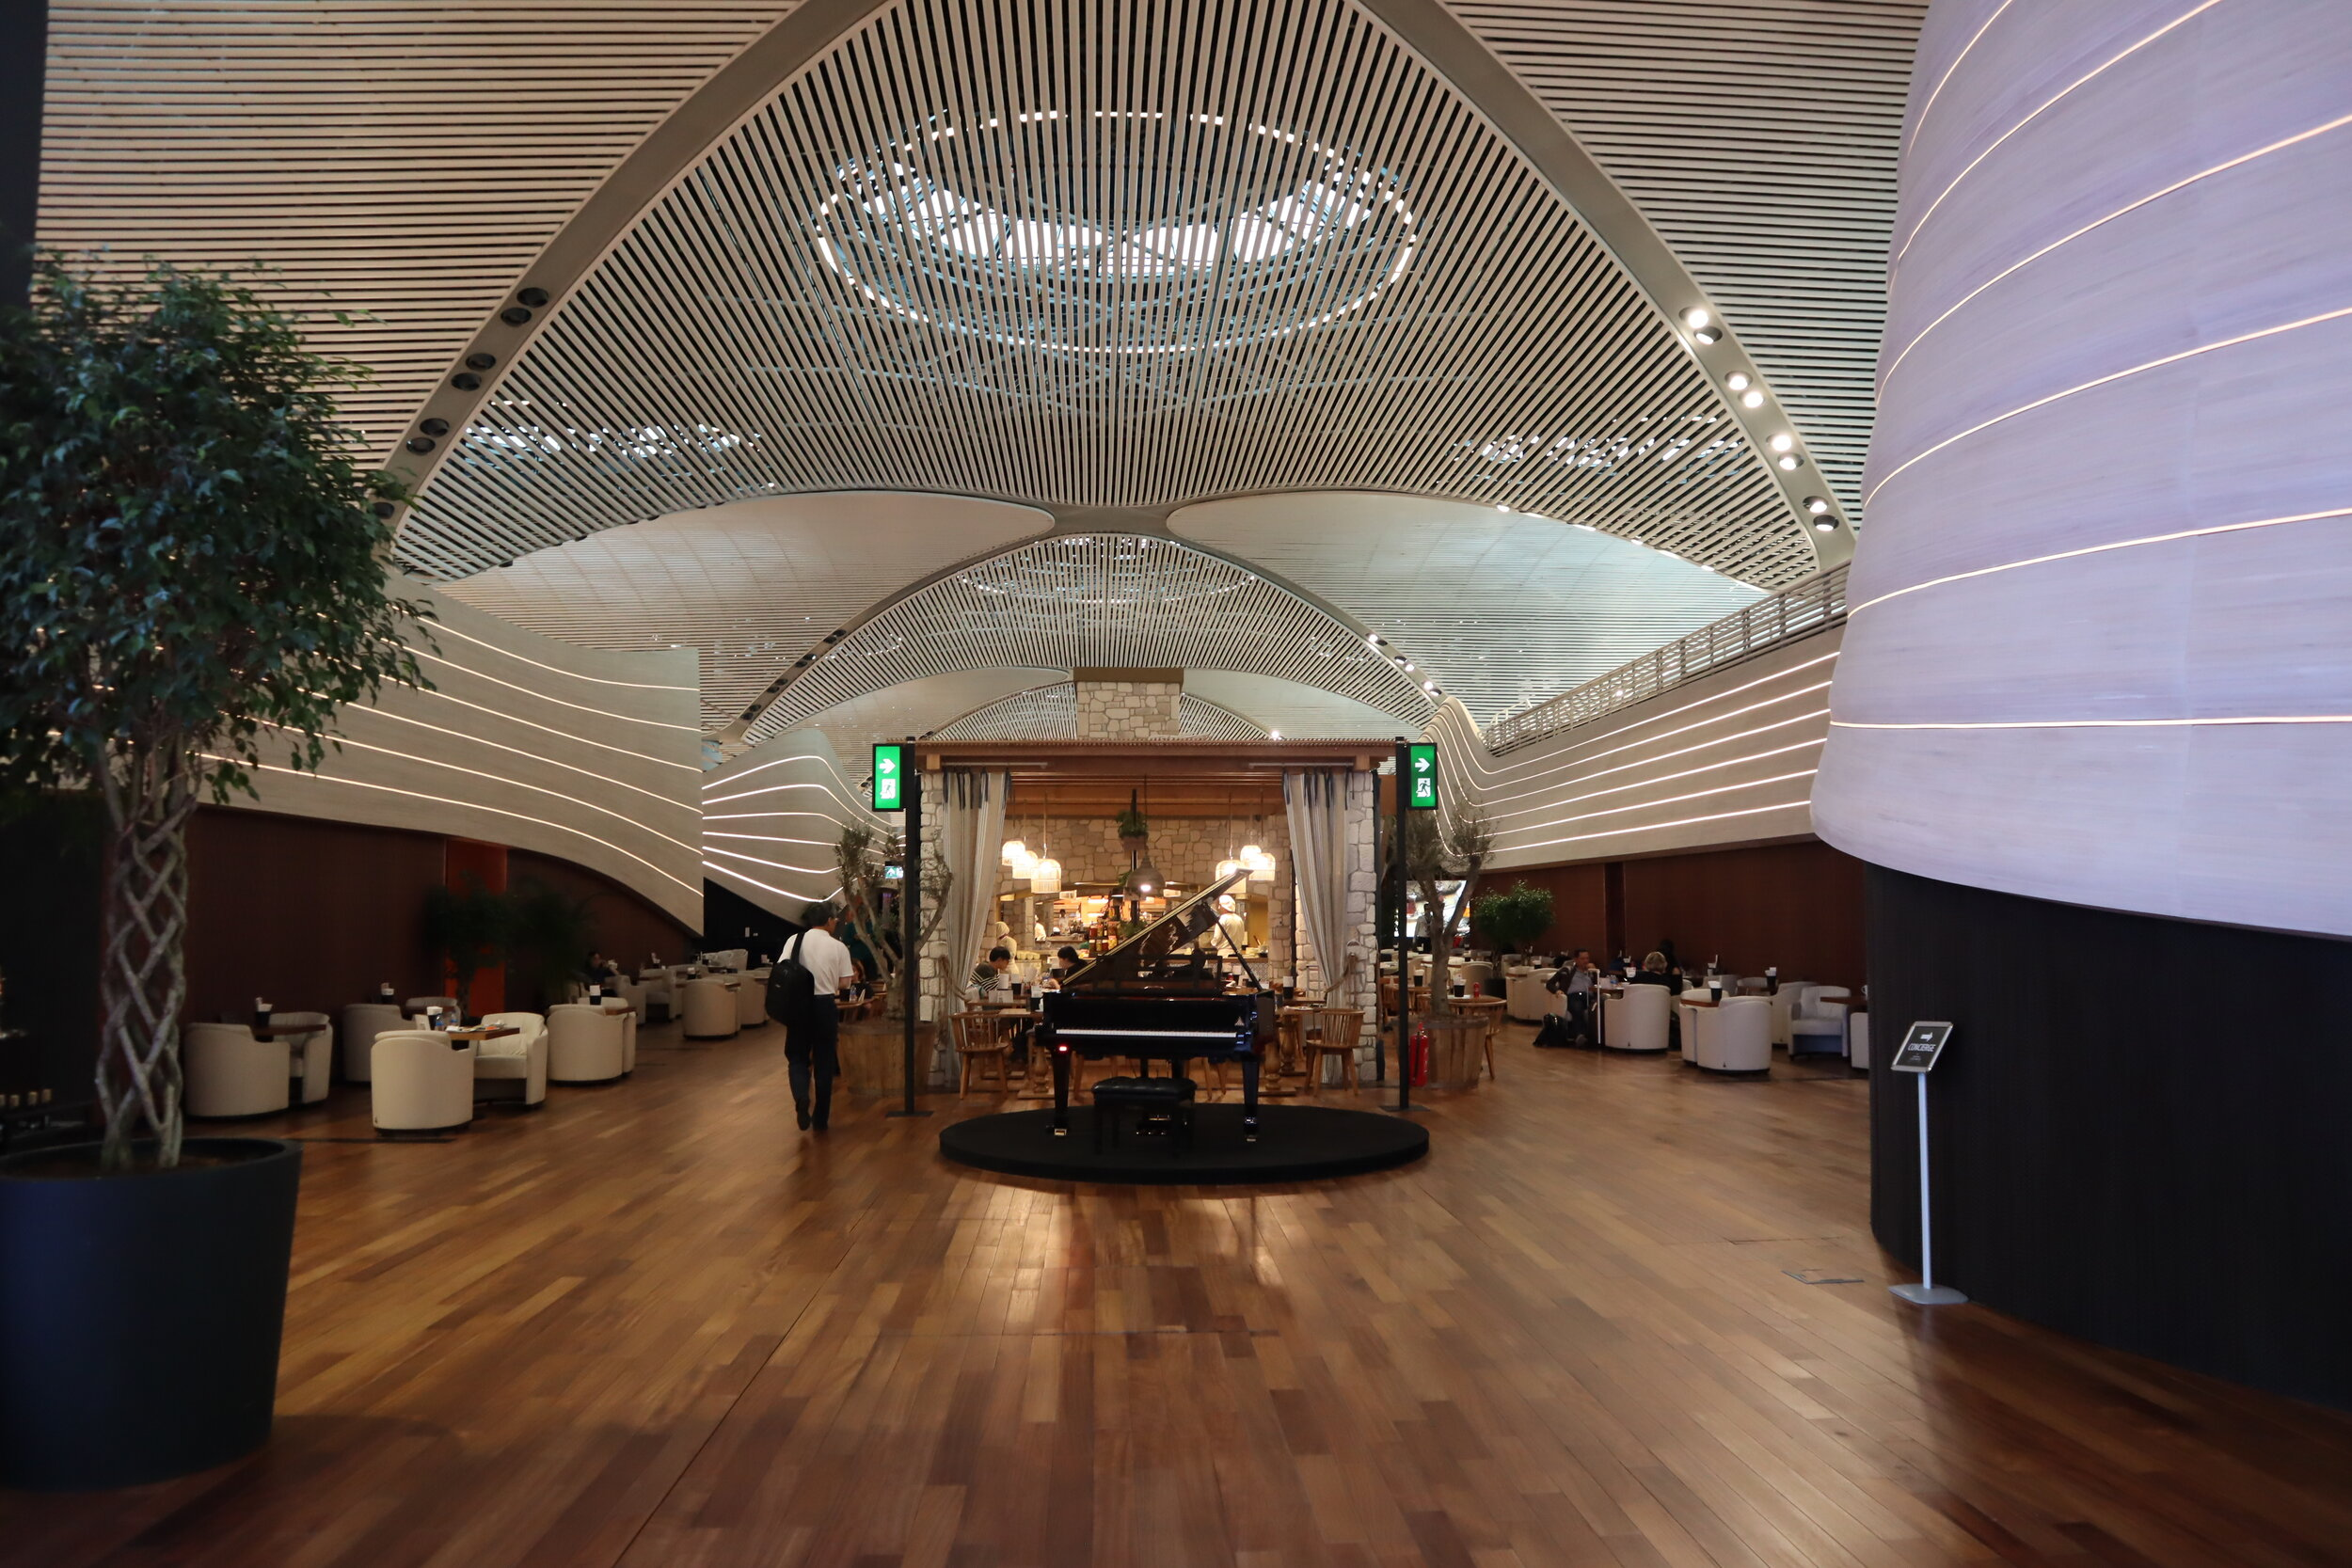 Turkish Airlines Business Lounge Istanbul – Main lounge area